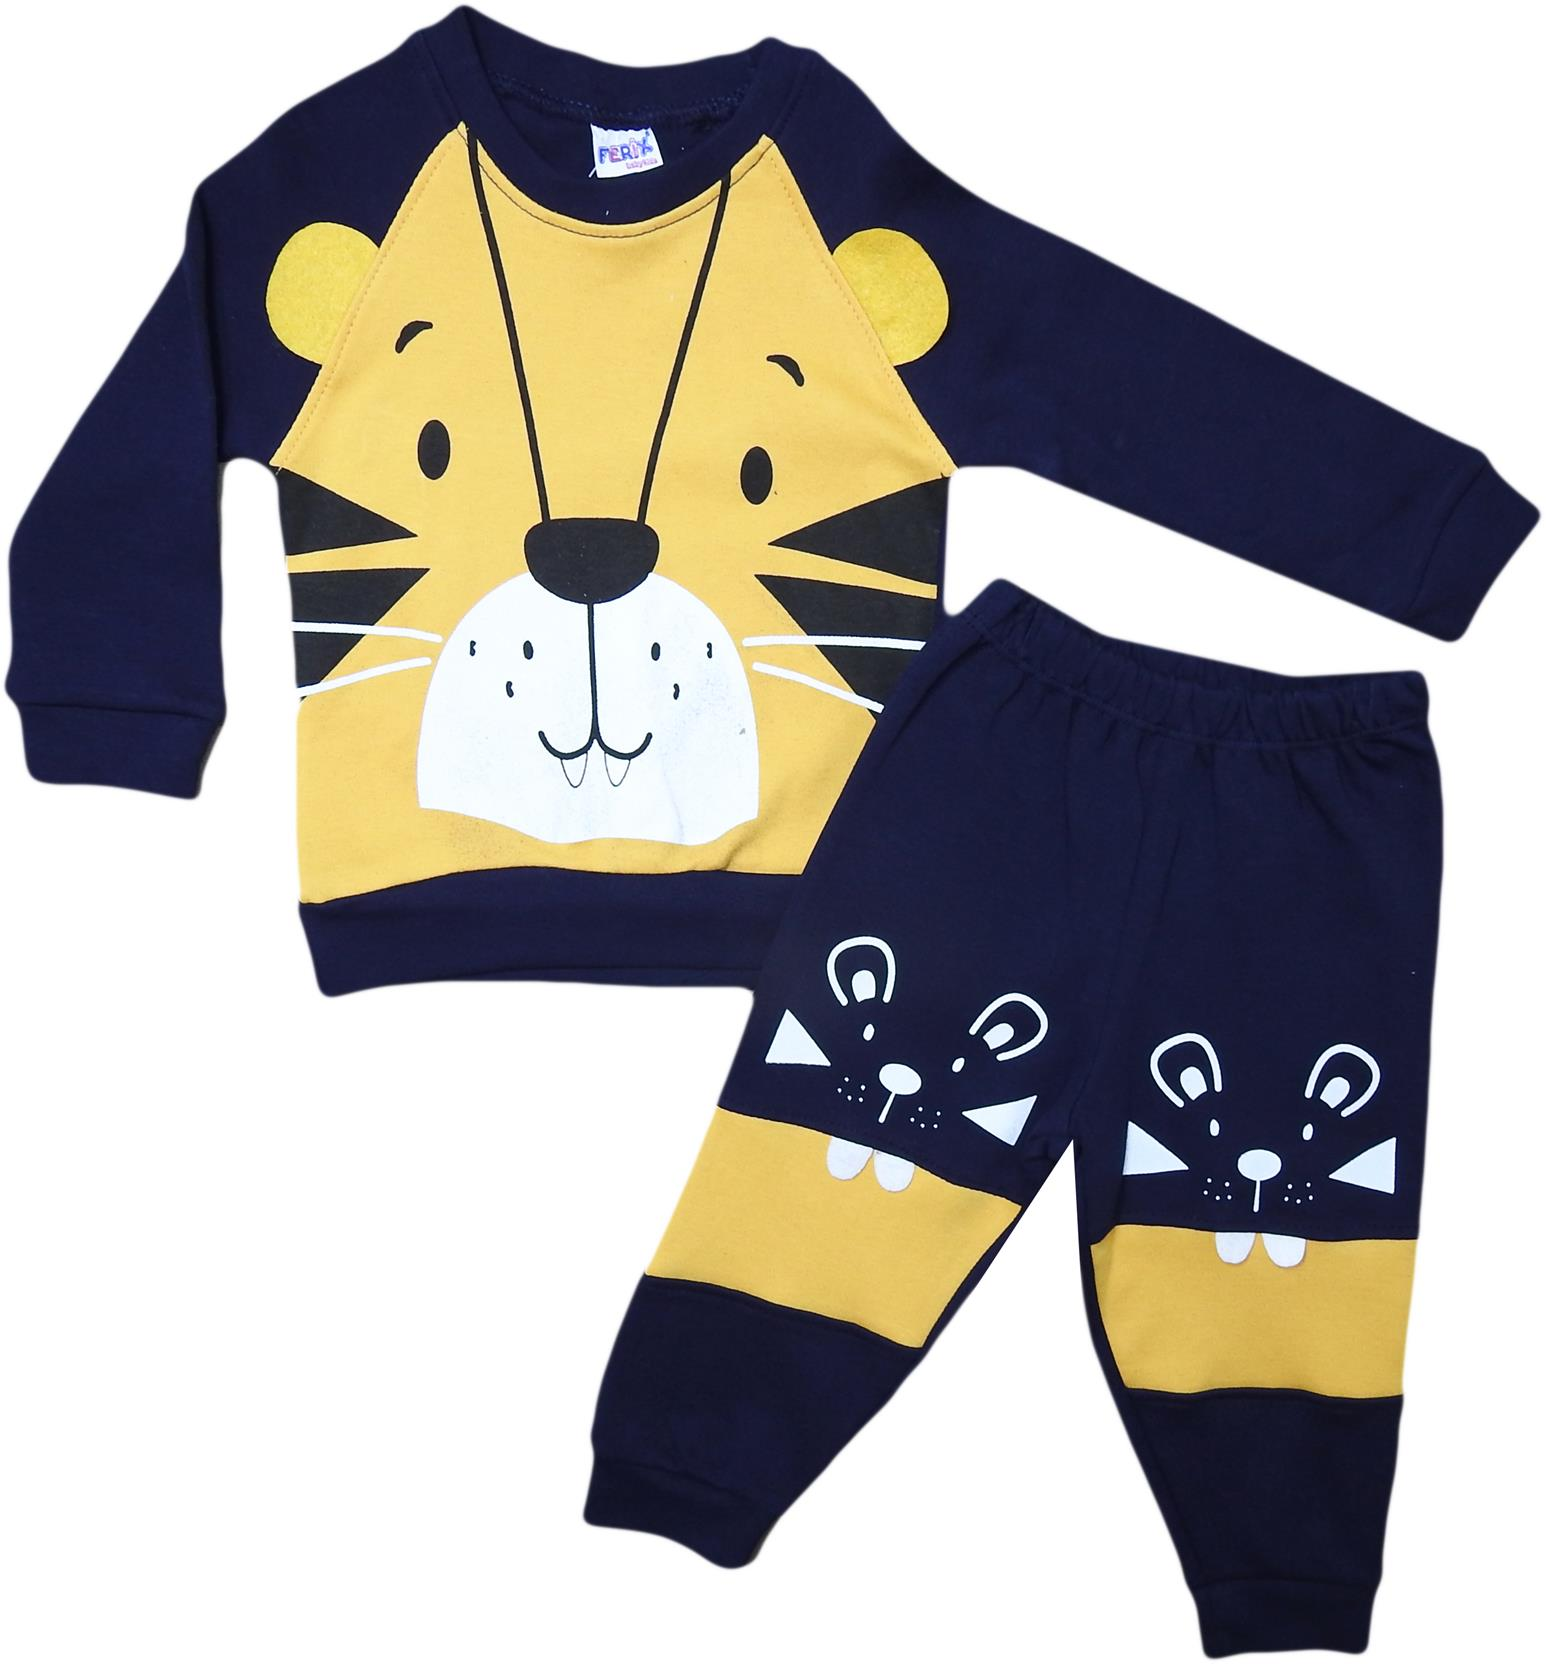 1932 wholesale suit for 1-2-3 years old boys.